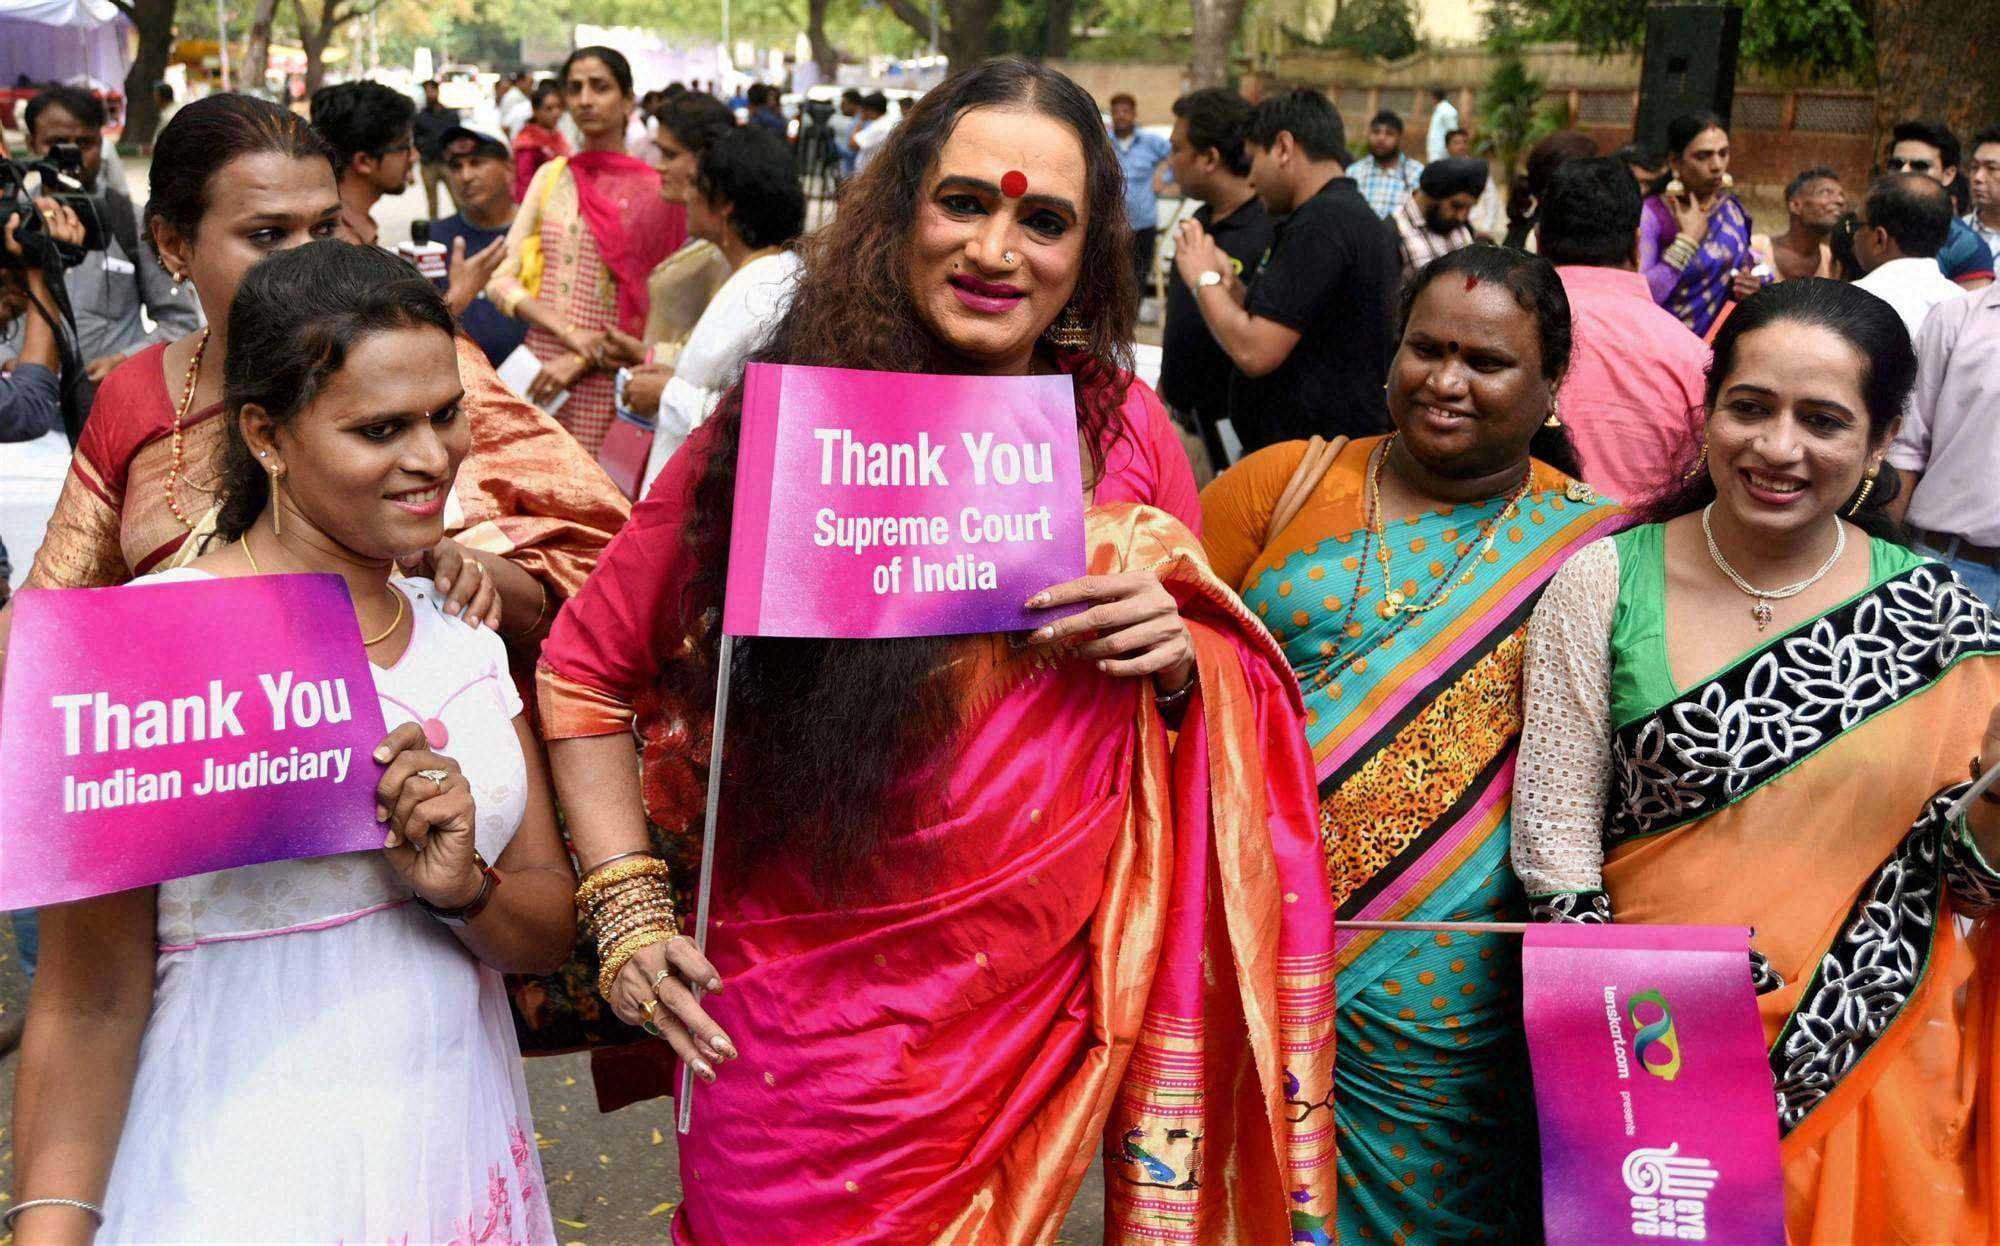 transgender and hijra community The history of the hijra community's stretches back to antiquity but now, with a new supreme court ruling, india's third gender has finally achieved full legal recognition, writes homa khaleeli.